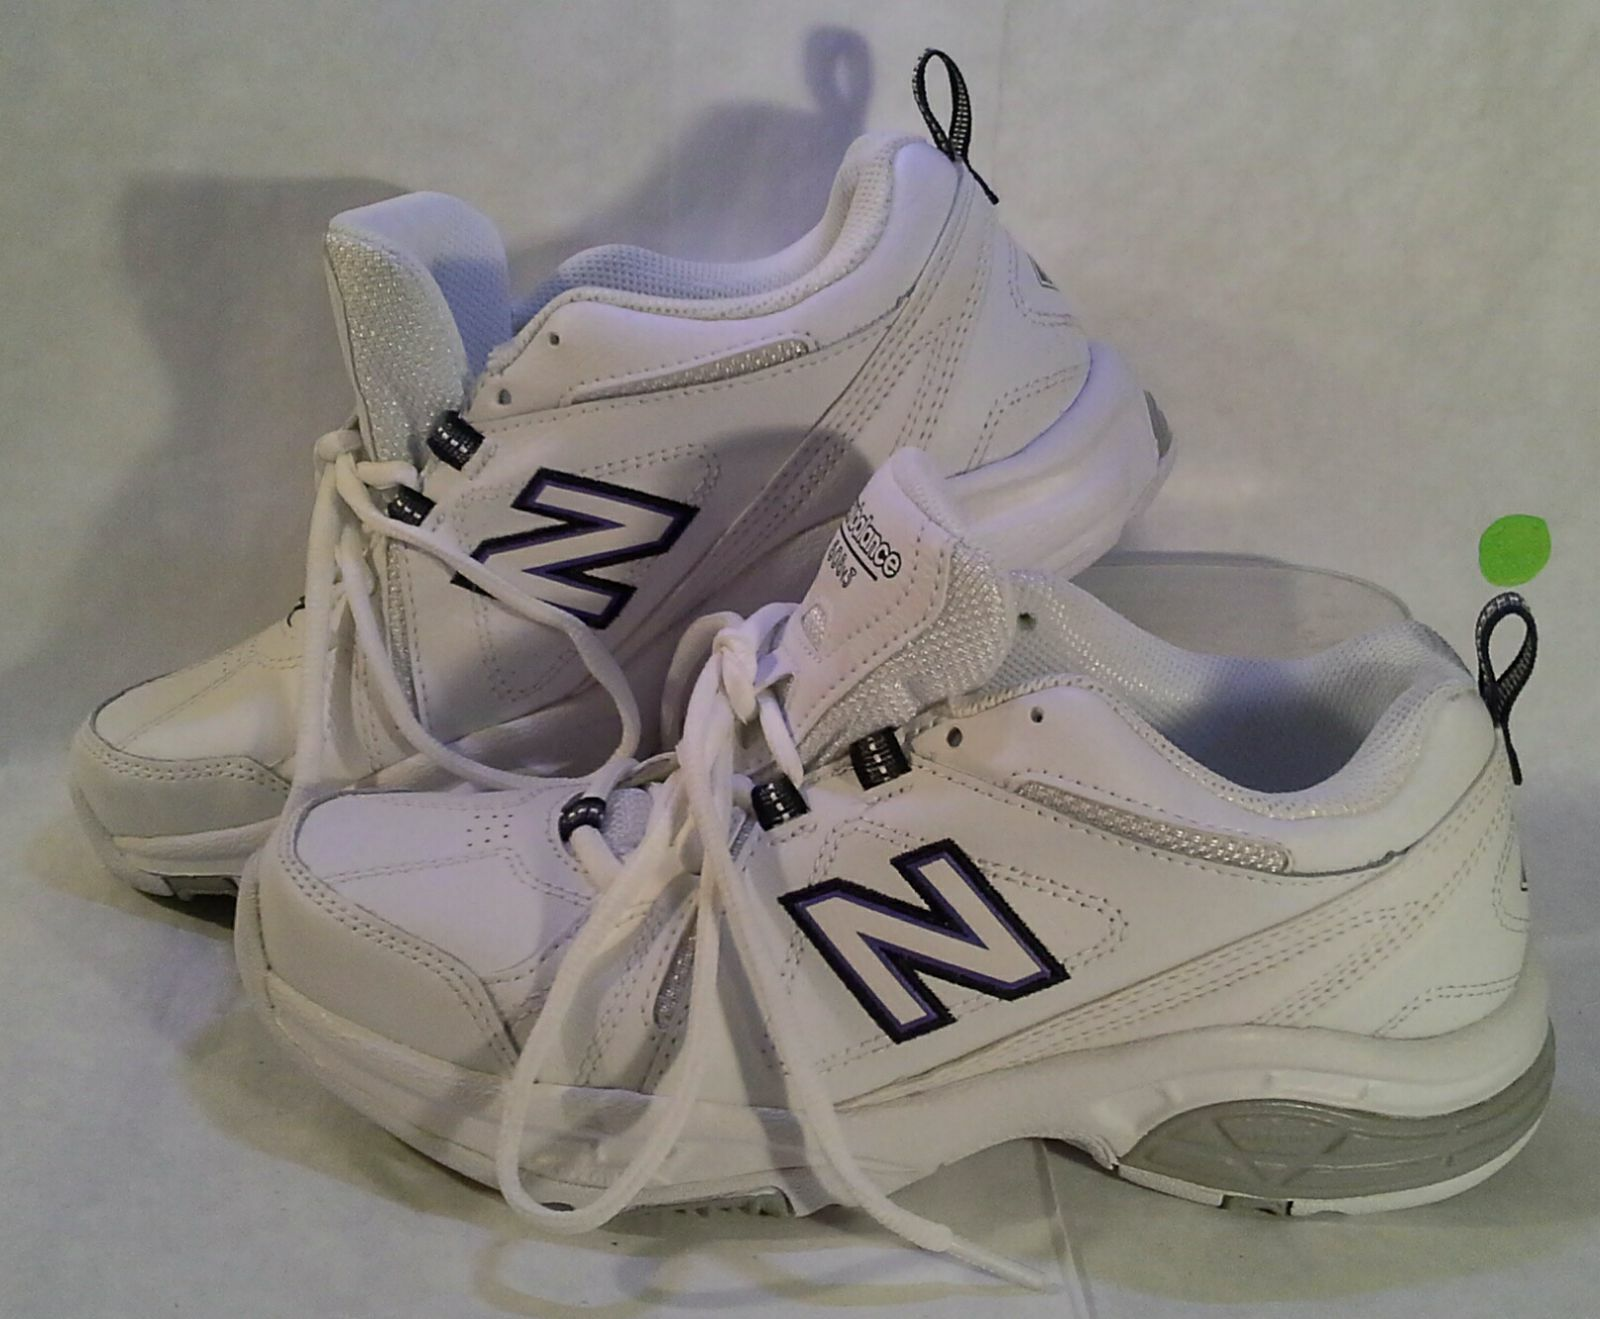 New Balance 608v3 Women's Size 7.5 Athletic/Training Shoes #WX608V3W